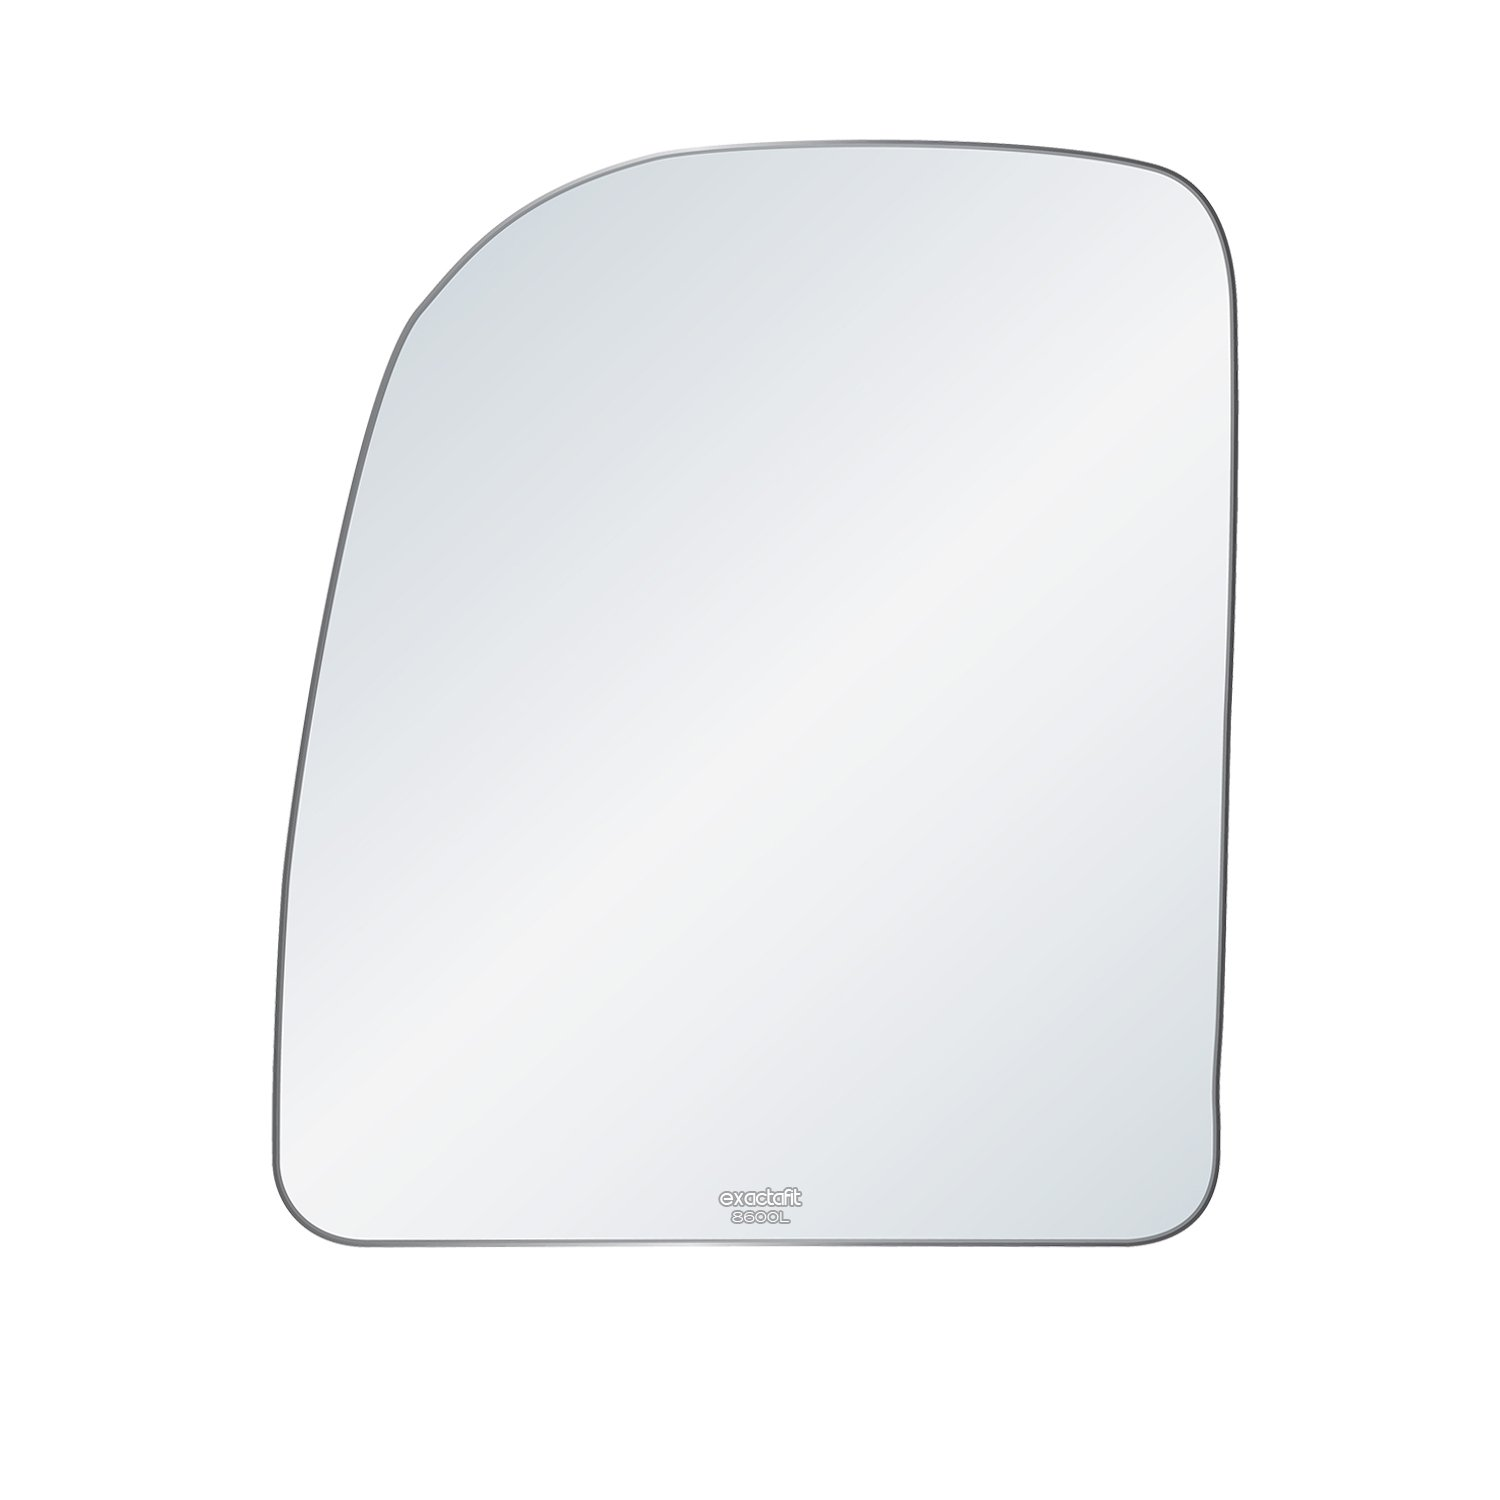 Ford F//E Series Truck Van Driver Side View Mirror Auto Glass Replacement Kit With Adhesive Pad By Rugged TUFF